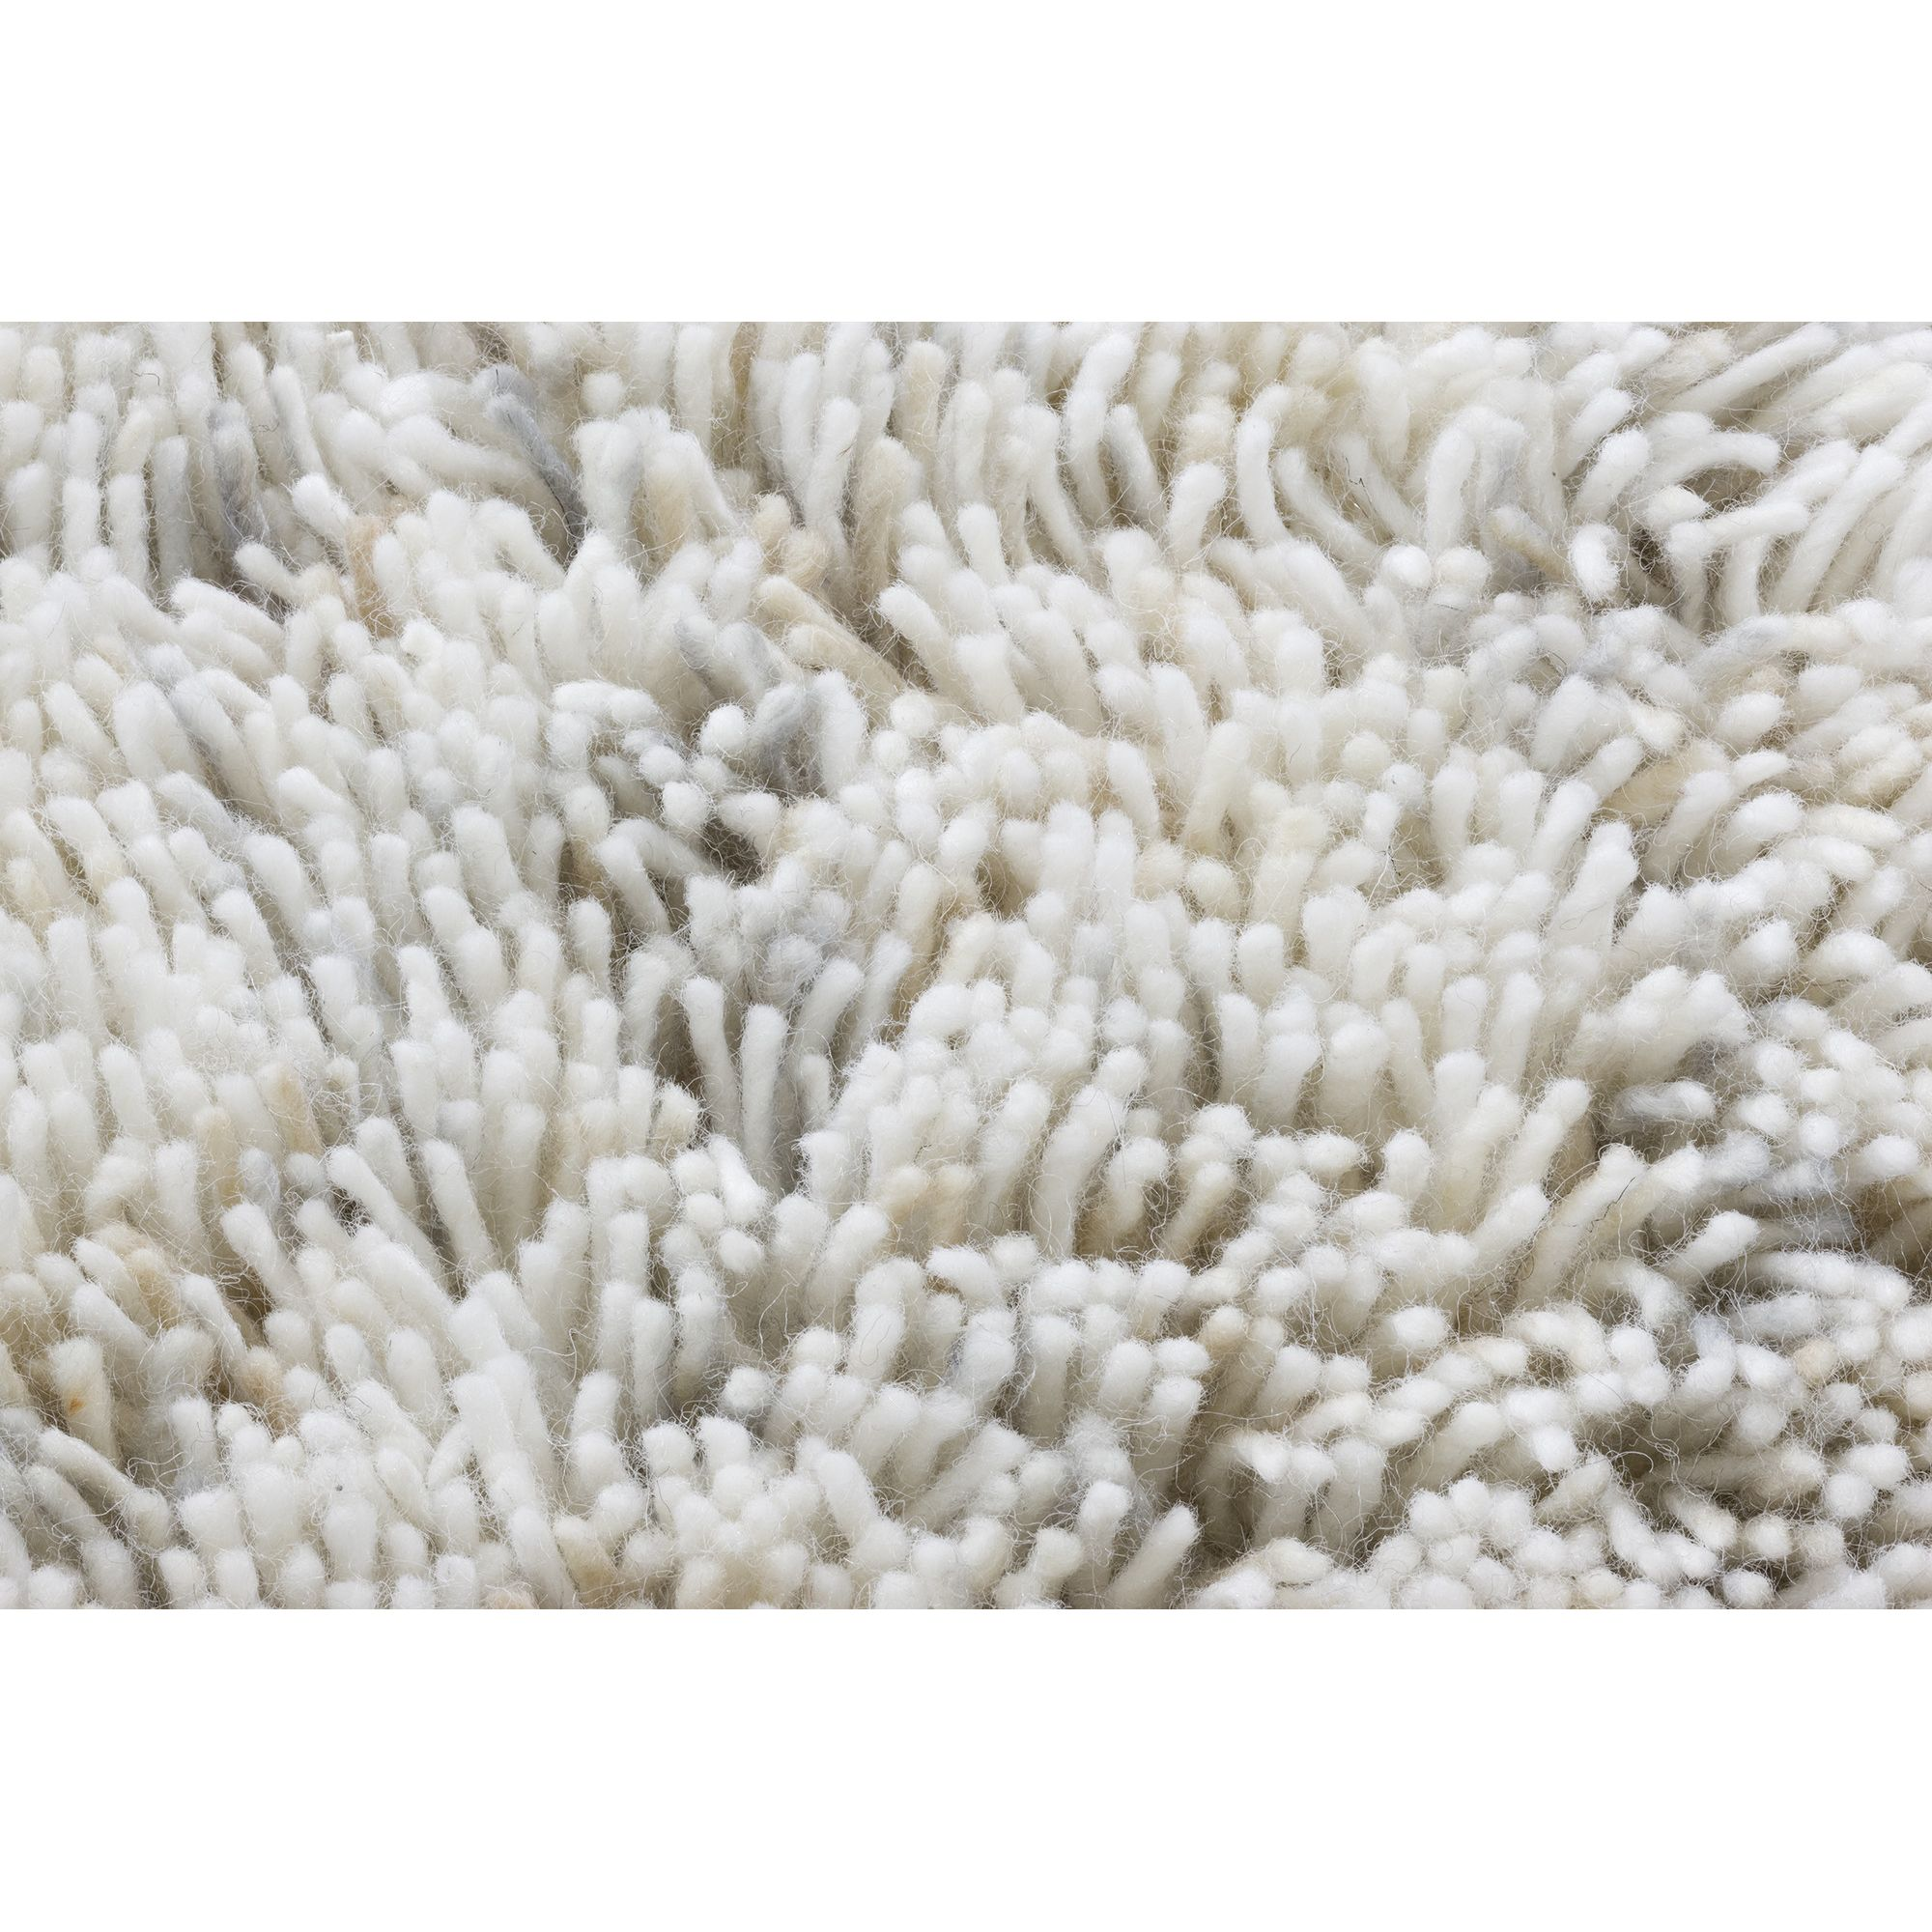 Linie Design Coral White Shag Rug - 300cm x 200cm at Tesco Direct